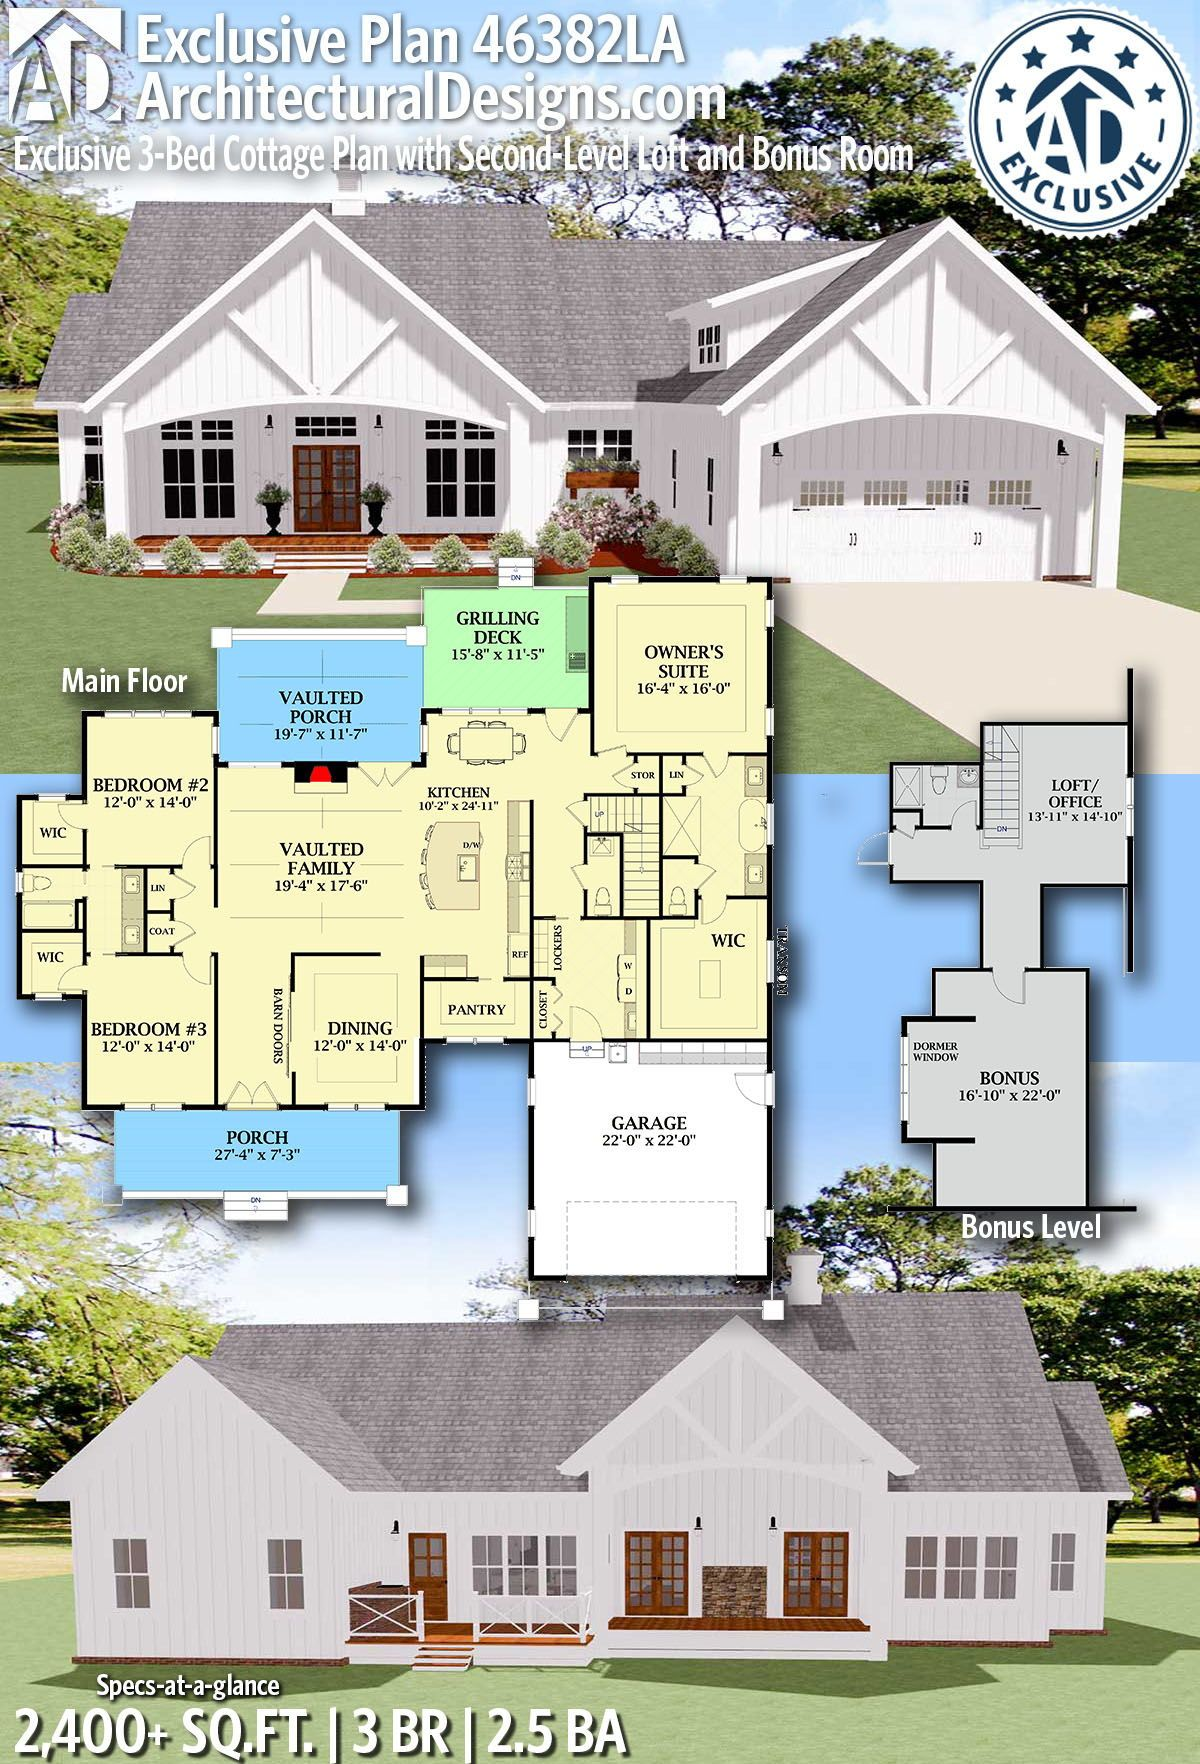 Plan 46382la Exclusive 3 Bed Cottage Plan With Second Level Loft And Bonus Room Cottage Plan House Plans Farmhouse Farmhouse Plans